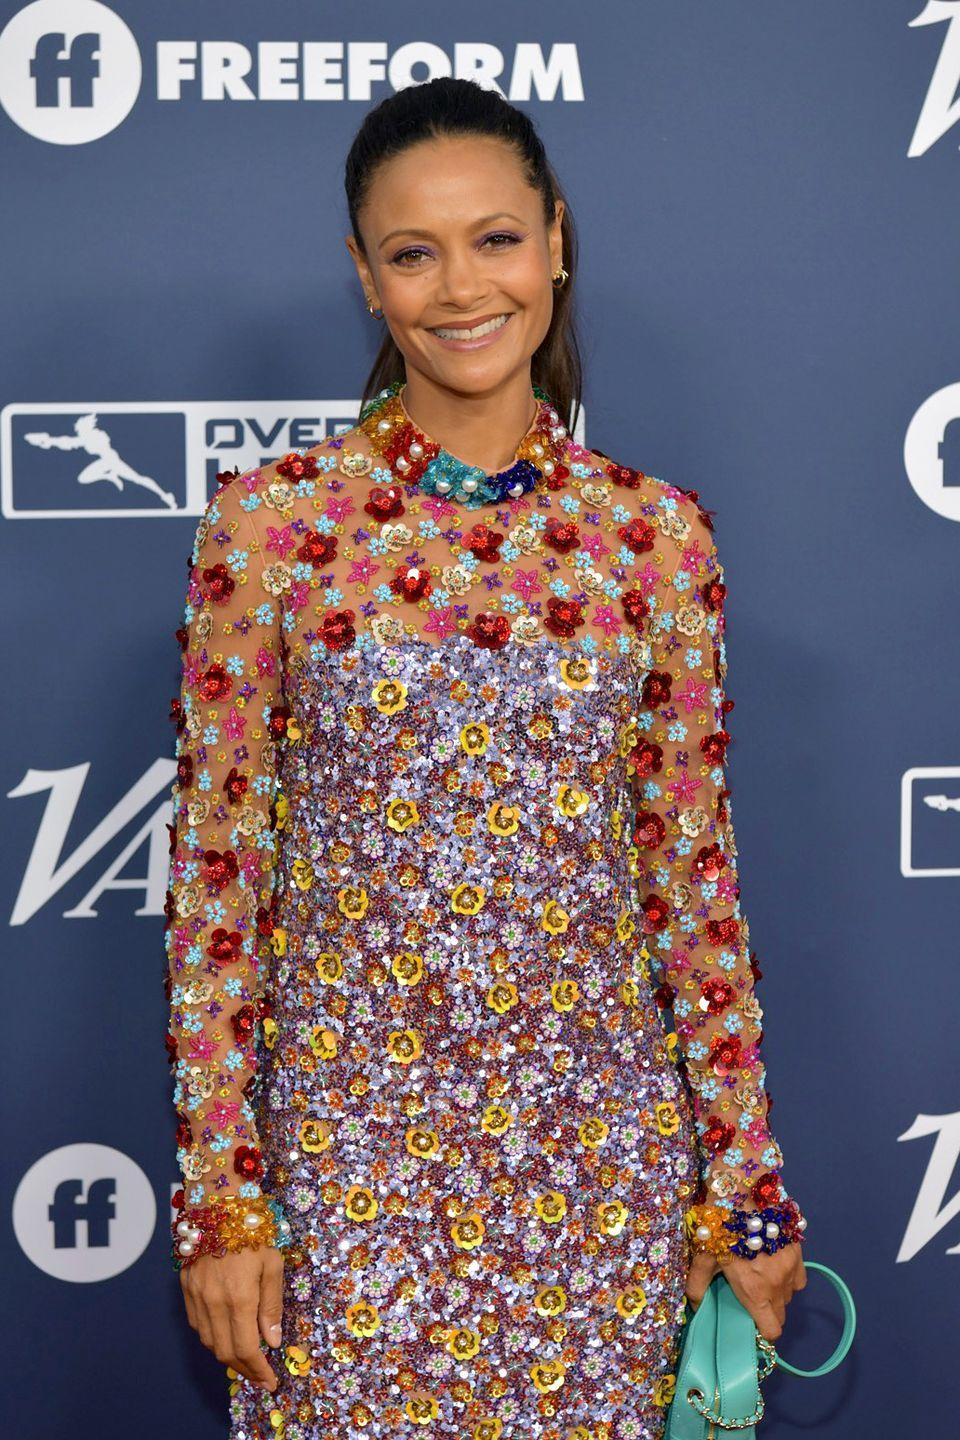 """<p>Newton credits her physique to two things: a vegetarian diet full of colorful fruits and veggies, and Jivamukti yoga. She once told<em> <a href=""""https://stylecaster.com/beauty/thandie-newton-on-olay-juicing-and-surviving-the-holidays/"""" rel=""""nofollow noopener"""" target=""""_blank"""" data-ylk=""""slk:StyleCaster"""" class=""""link rapid-noclick-resp"""">StyleCaster</a></em>, """"It's key to make sure you have a lot of color on your plate. The more colorful the food, the more beneficial it is.""""</p>"""